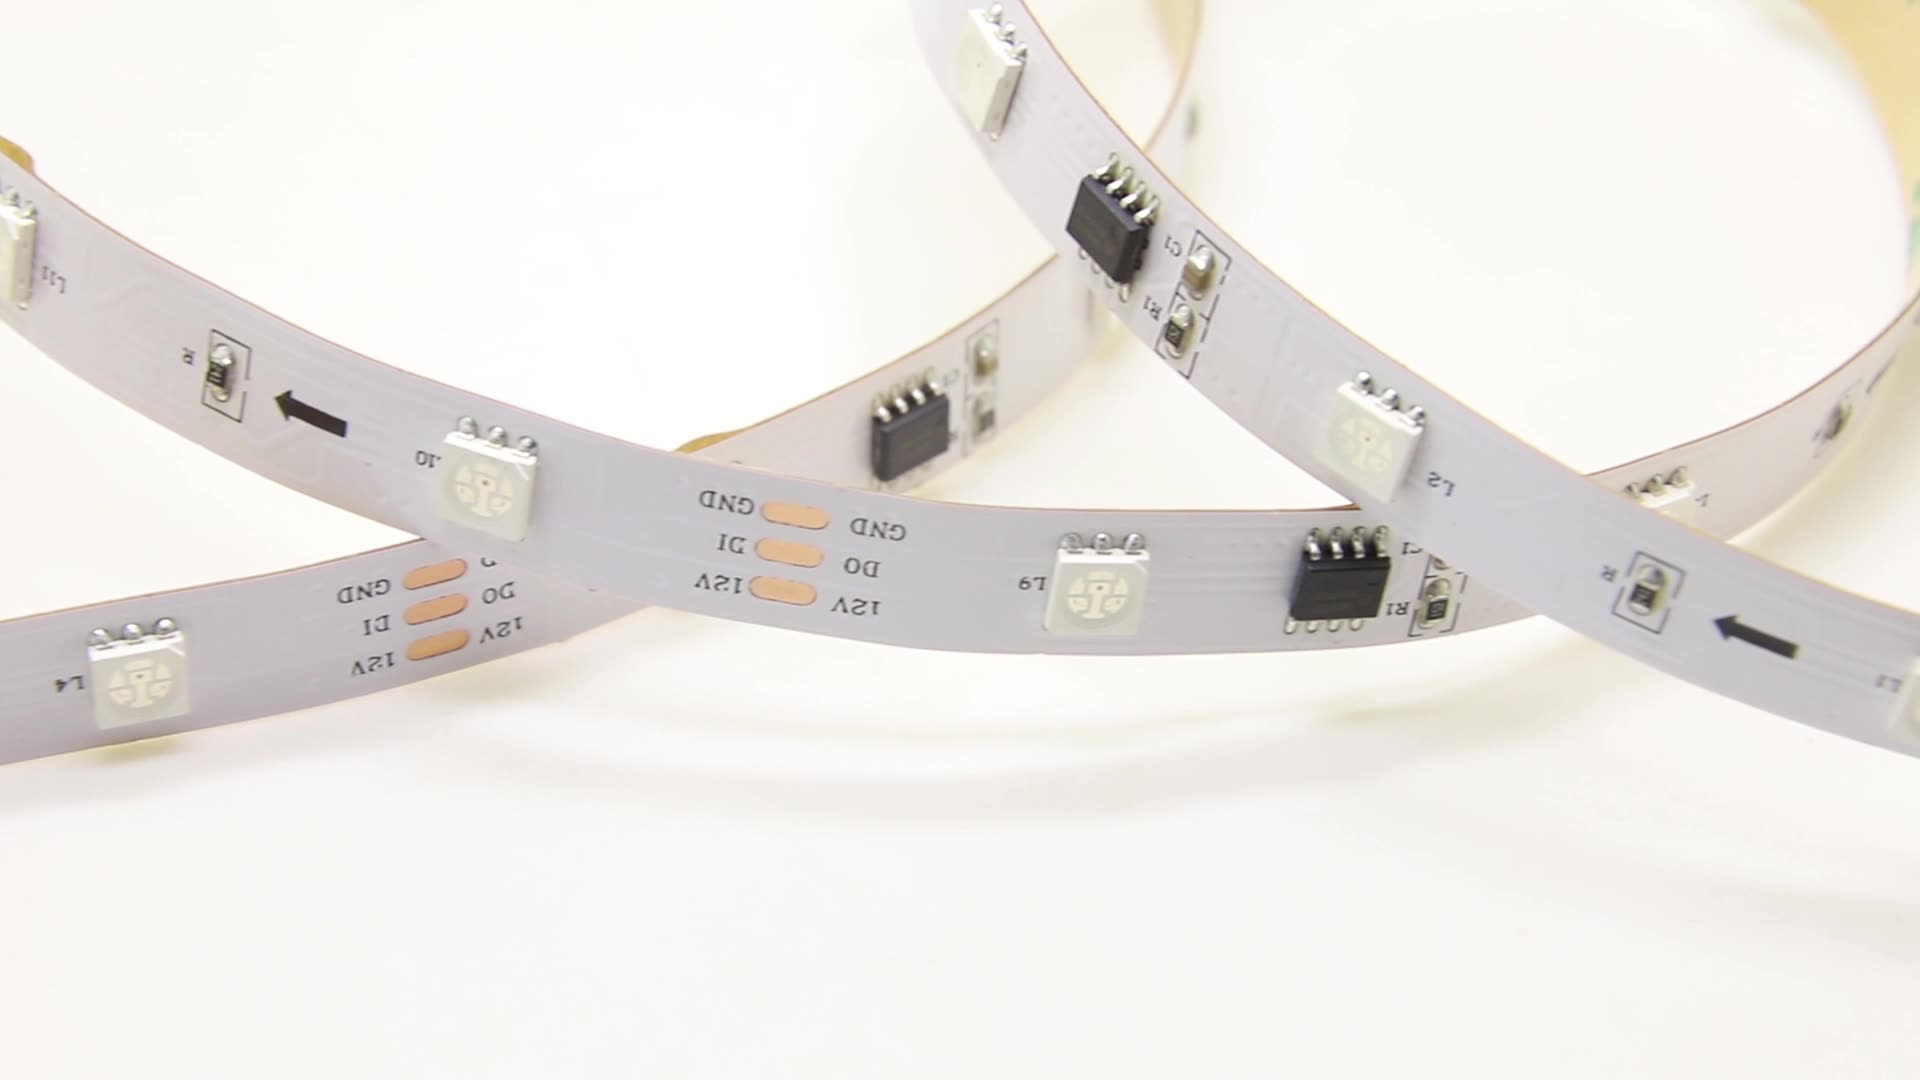 Club Magic RGB strip light 12V 24V black PCB Dream color addressable ws2811 led strip